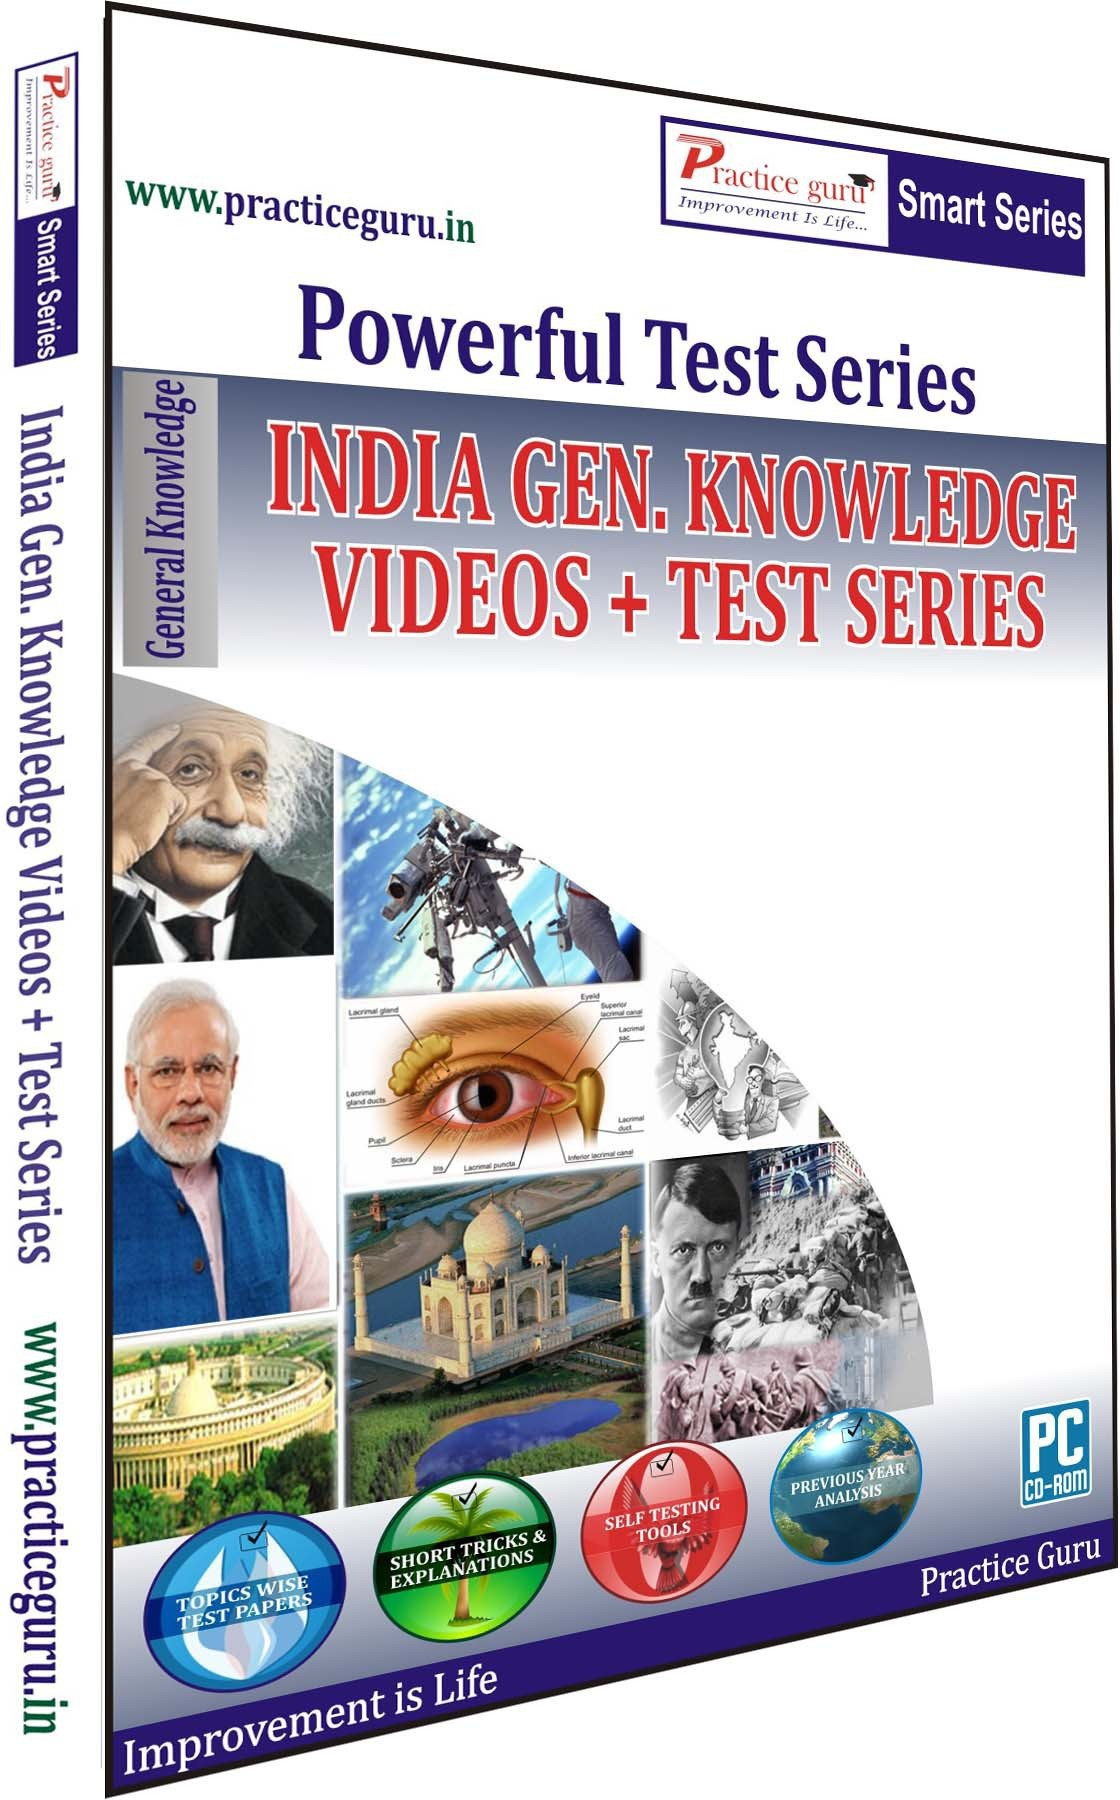 Practice Guru India Gen. Knowledge Videos + Test Series